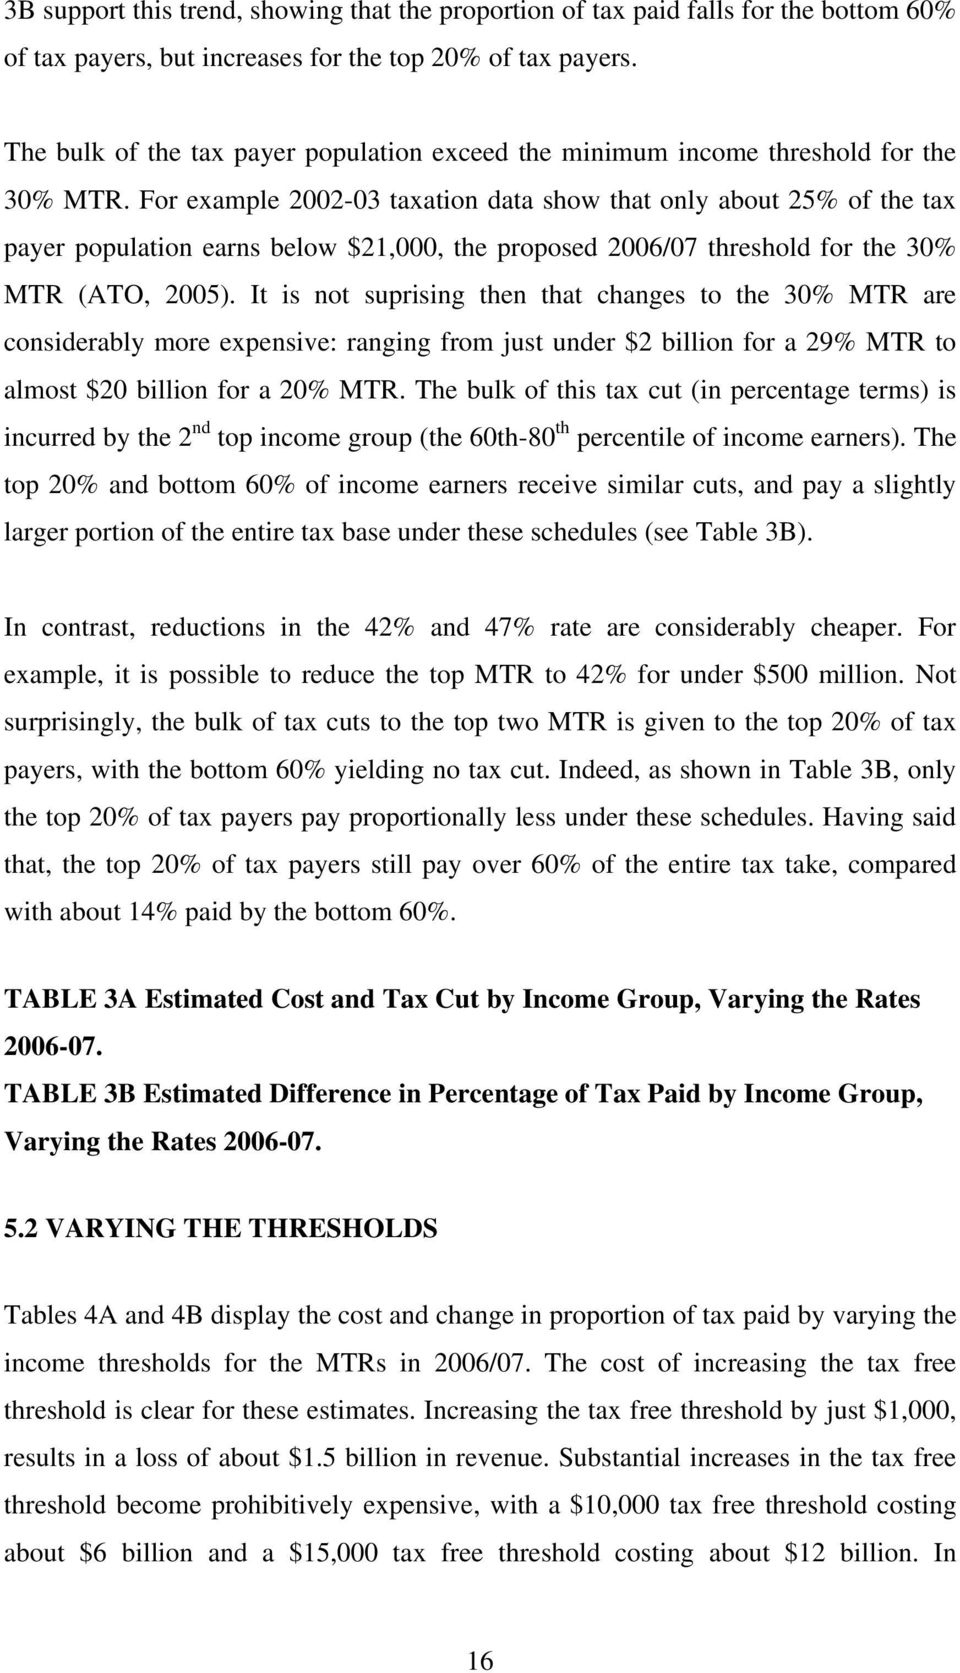 For example 2002-03 taxation data show that only about 25% of the tax payer population earns below $21,000, the proposed 2006/07 threshold for the 30% MTR (ATO, 2005).